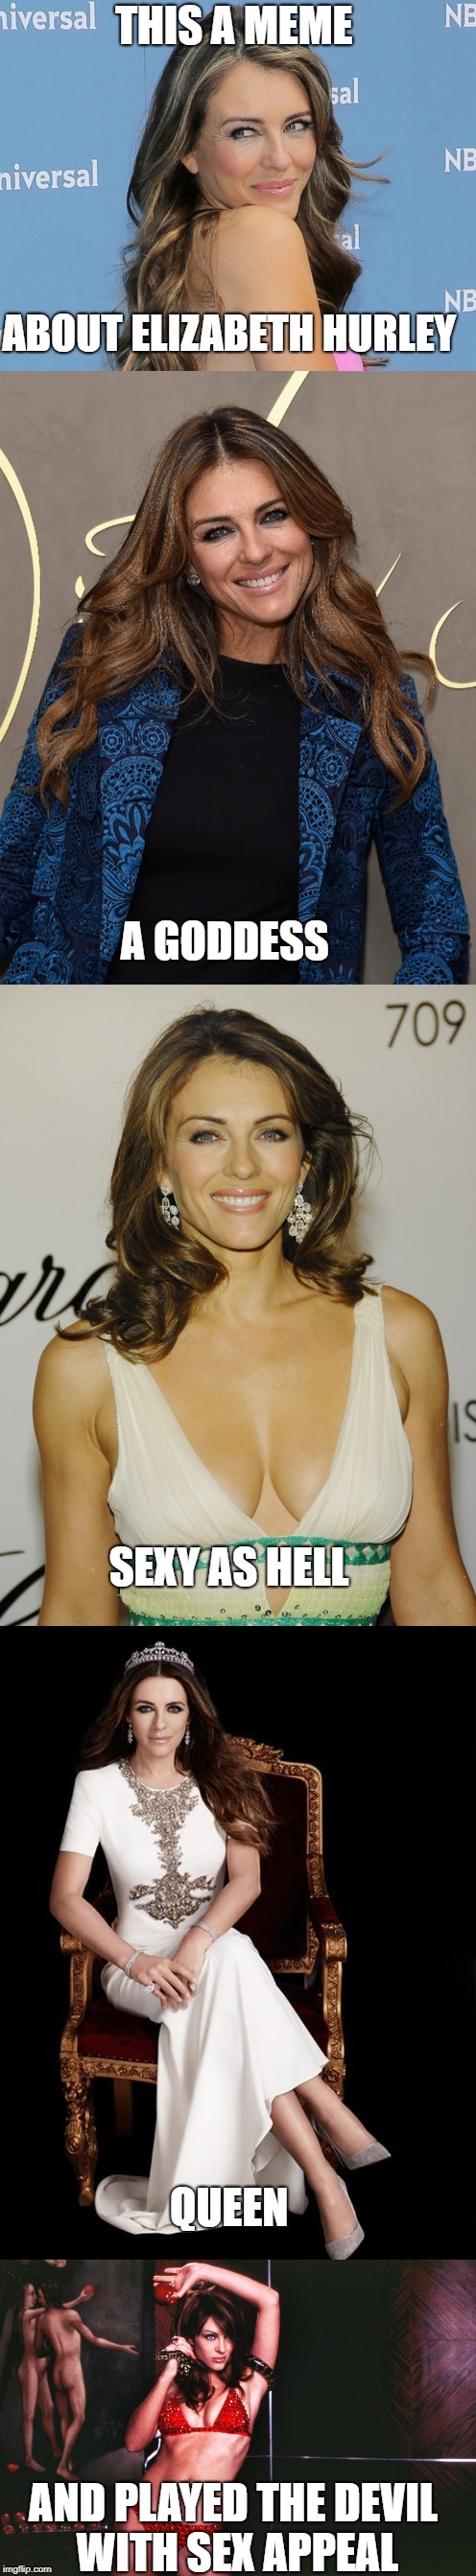 elizabeth hurley  | THIS A MEME ABOUT ELIZABETH HURLEY A GODDESS SEXY AS HELL QUEEN AND PLAYED THE DEVIL WITH SEX APPEAL | image tagged in celebrity,goddess,sexy women,milf | made w/ Imgflip meme maker